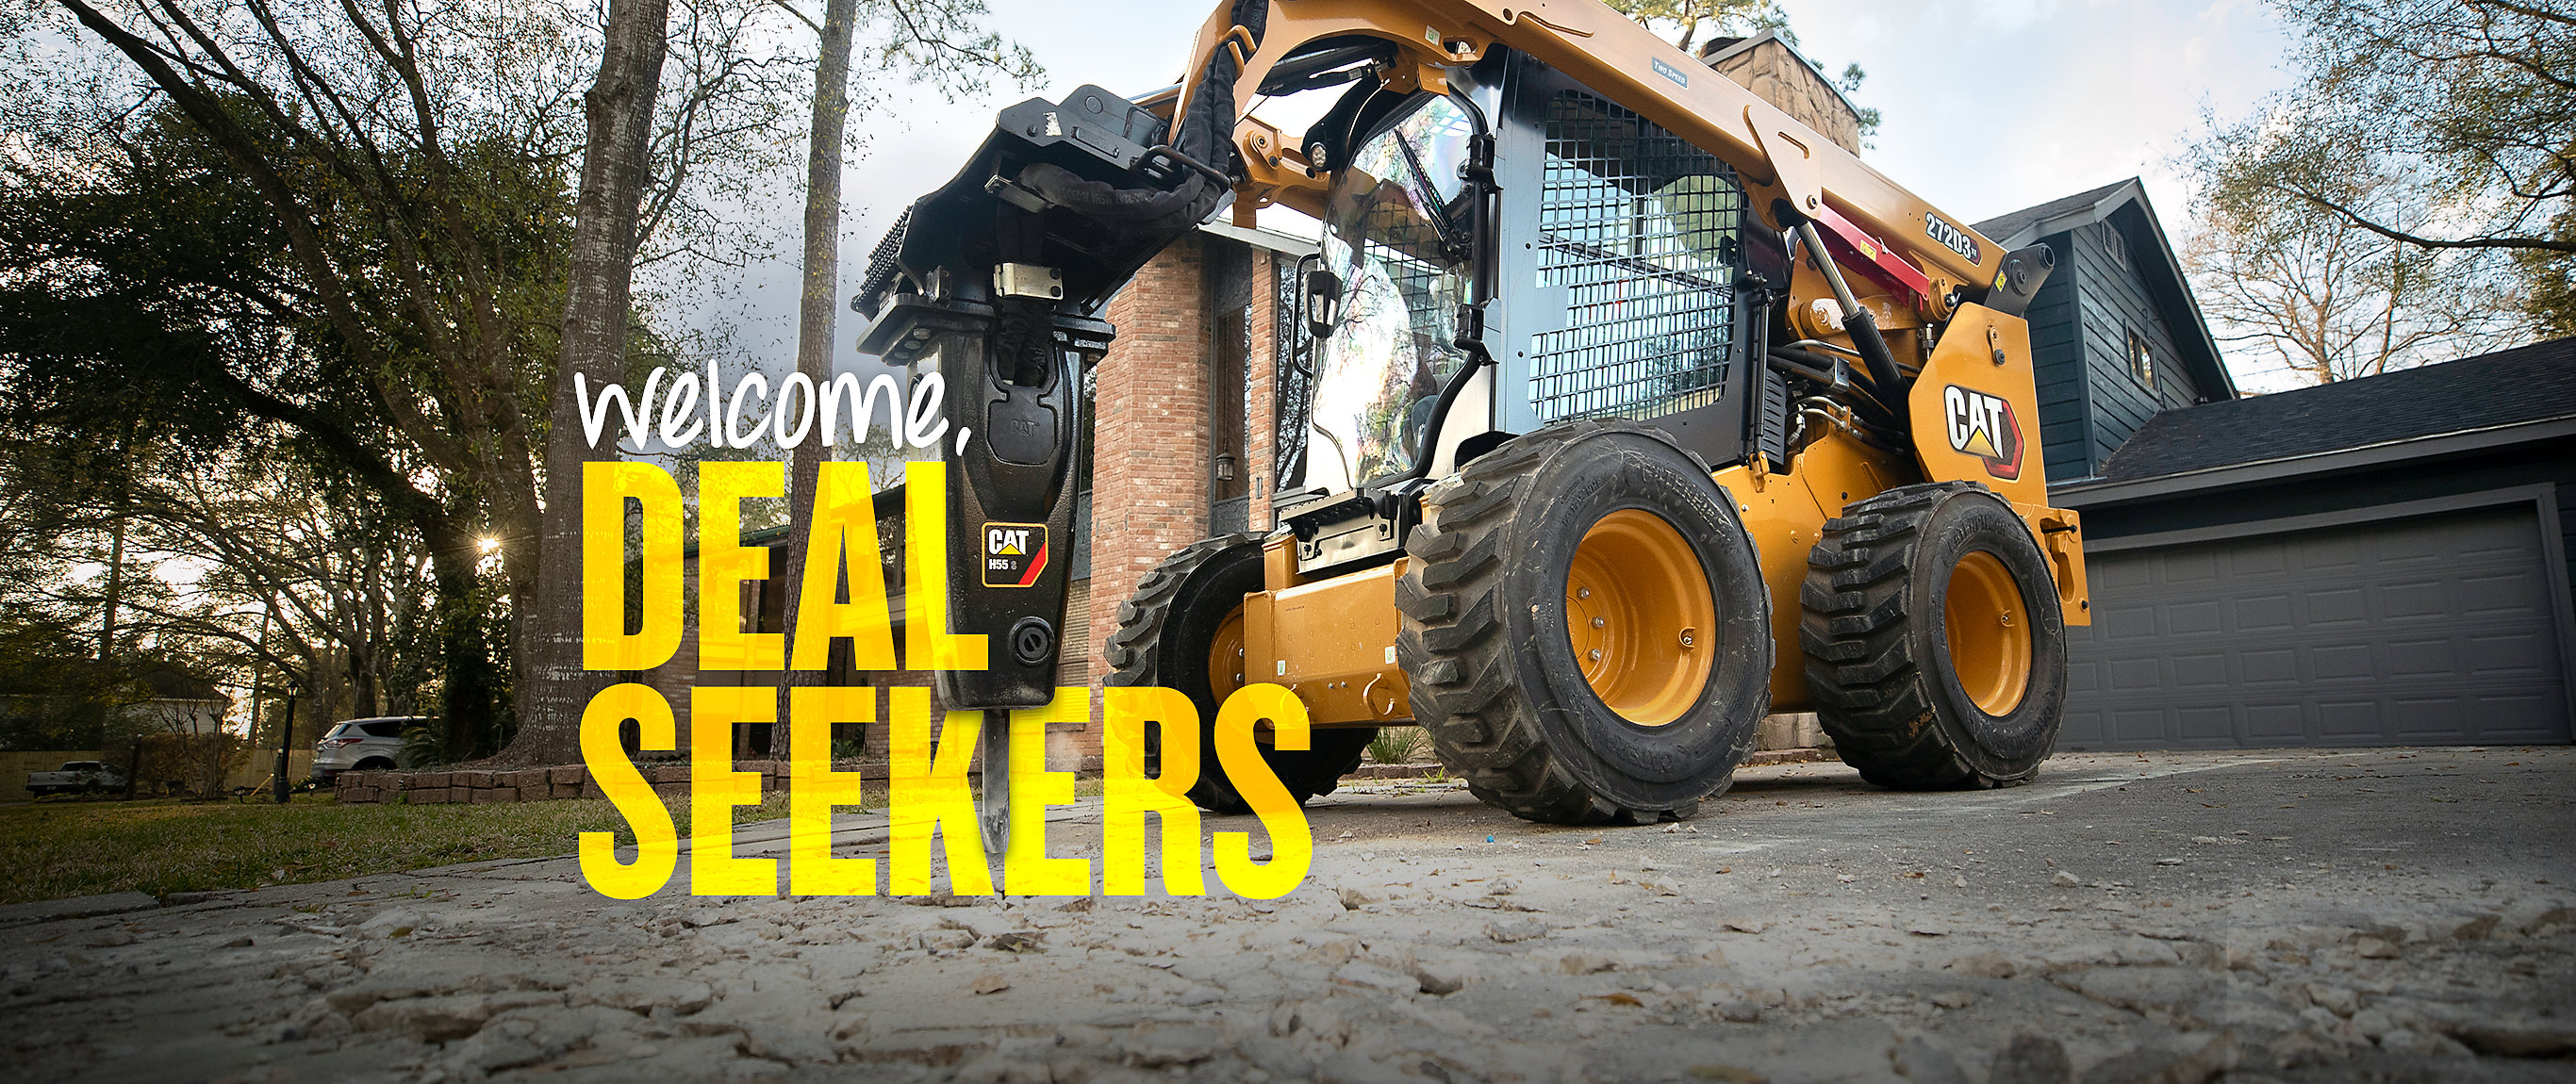 Compact Equipment Offers - Welcome, Deal Seekers